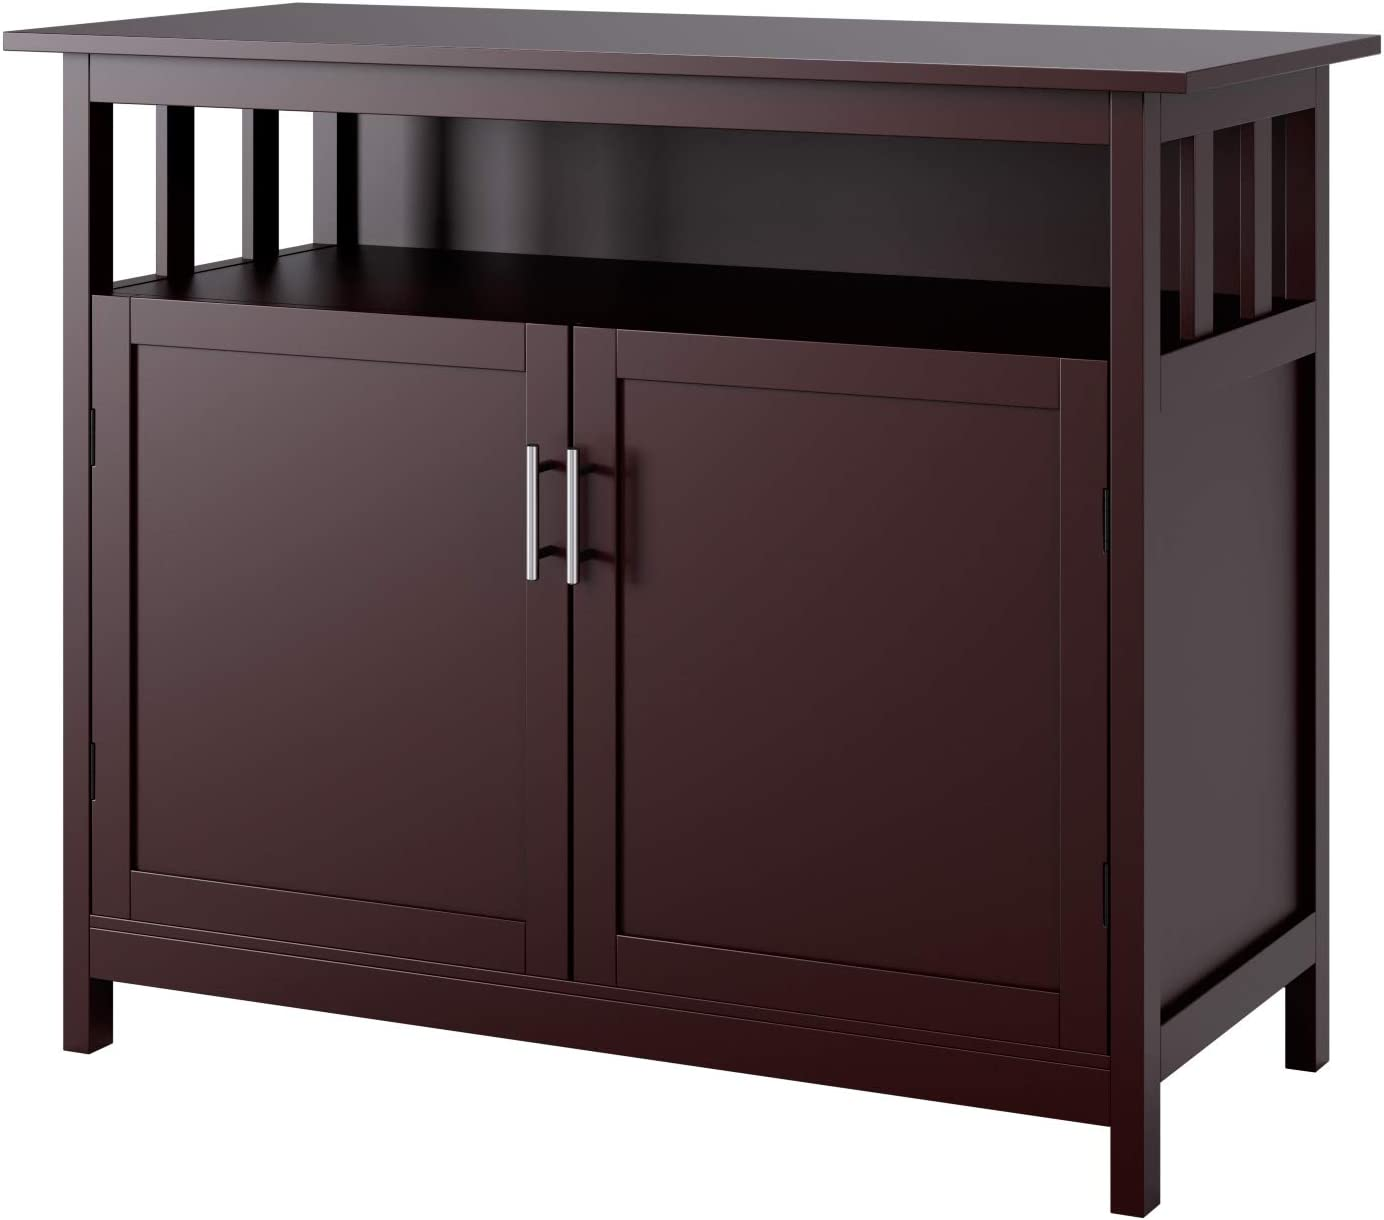 Homfa Kitchen Sideboard Storage Cabinet, Large Dining Buffet Server Cupboard Cabinet, Console Table with Display Shelf and Double Doors, Idea for Kitchen and Dining (Dark Brown)